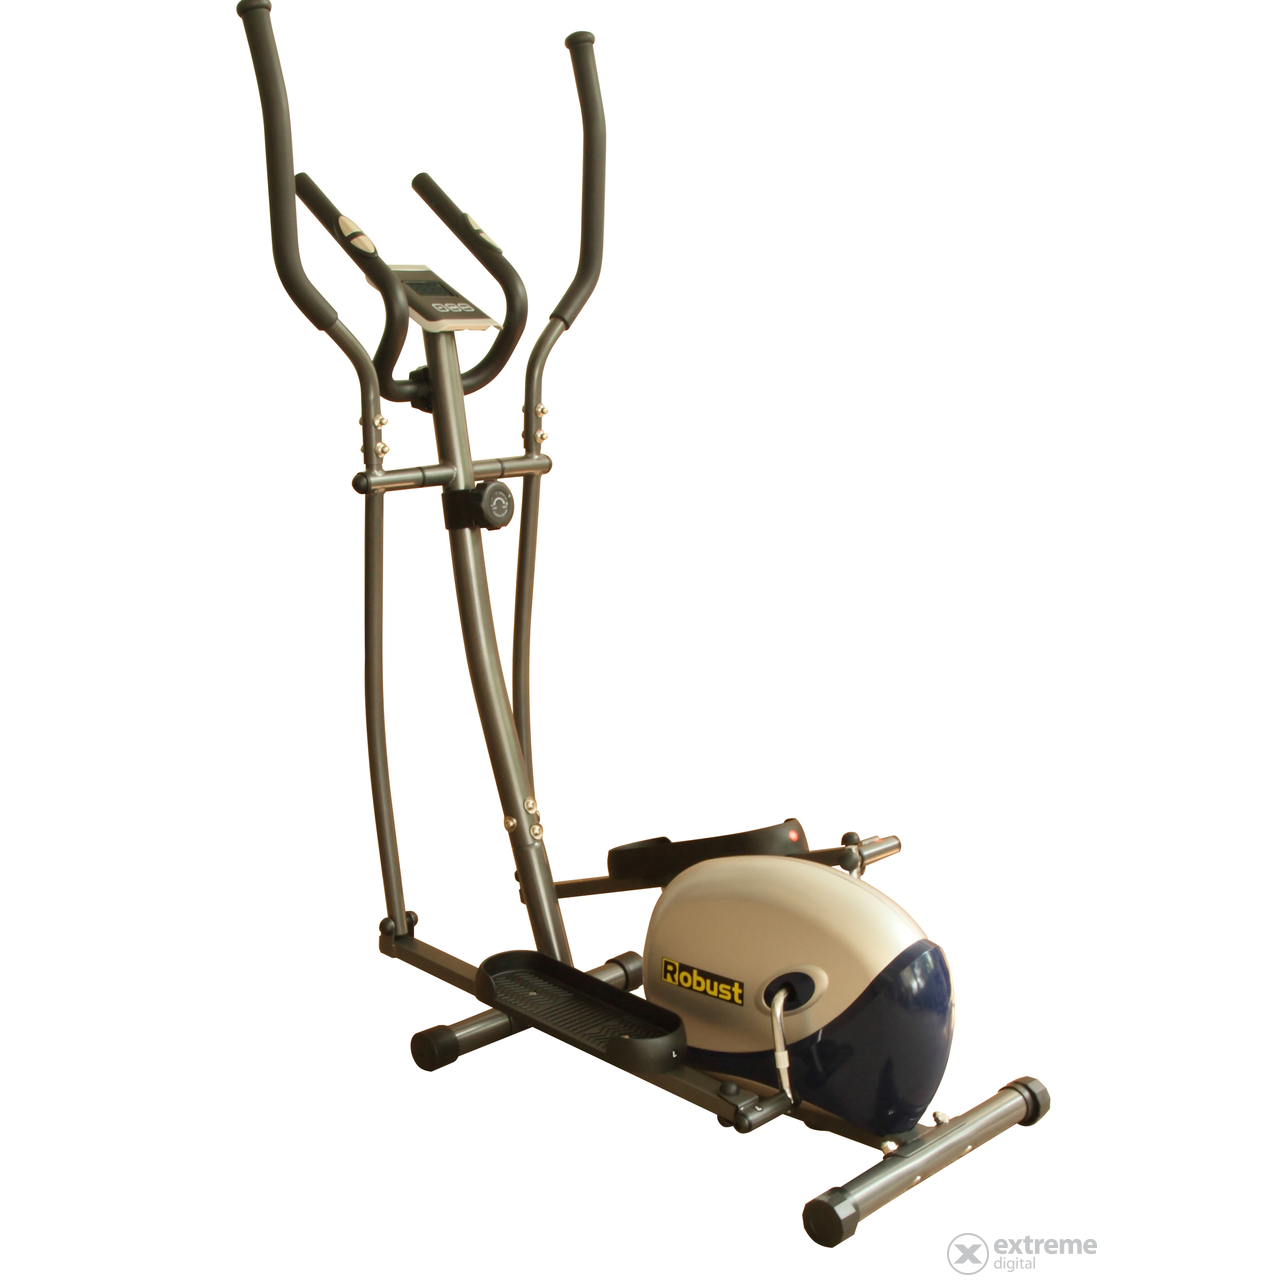 Robust Compact elliptical